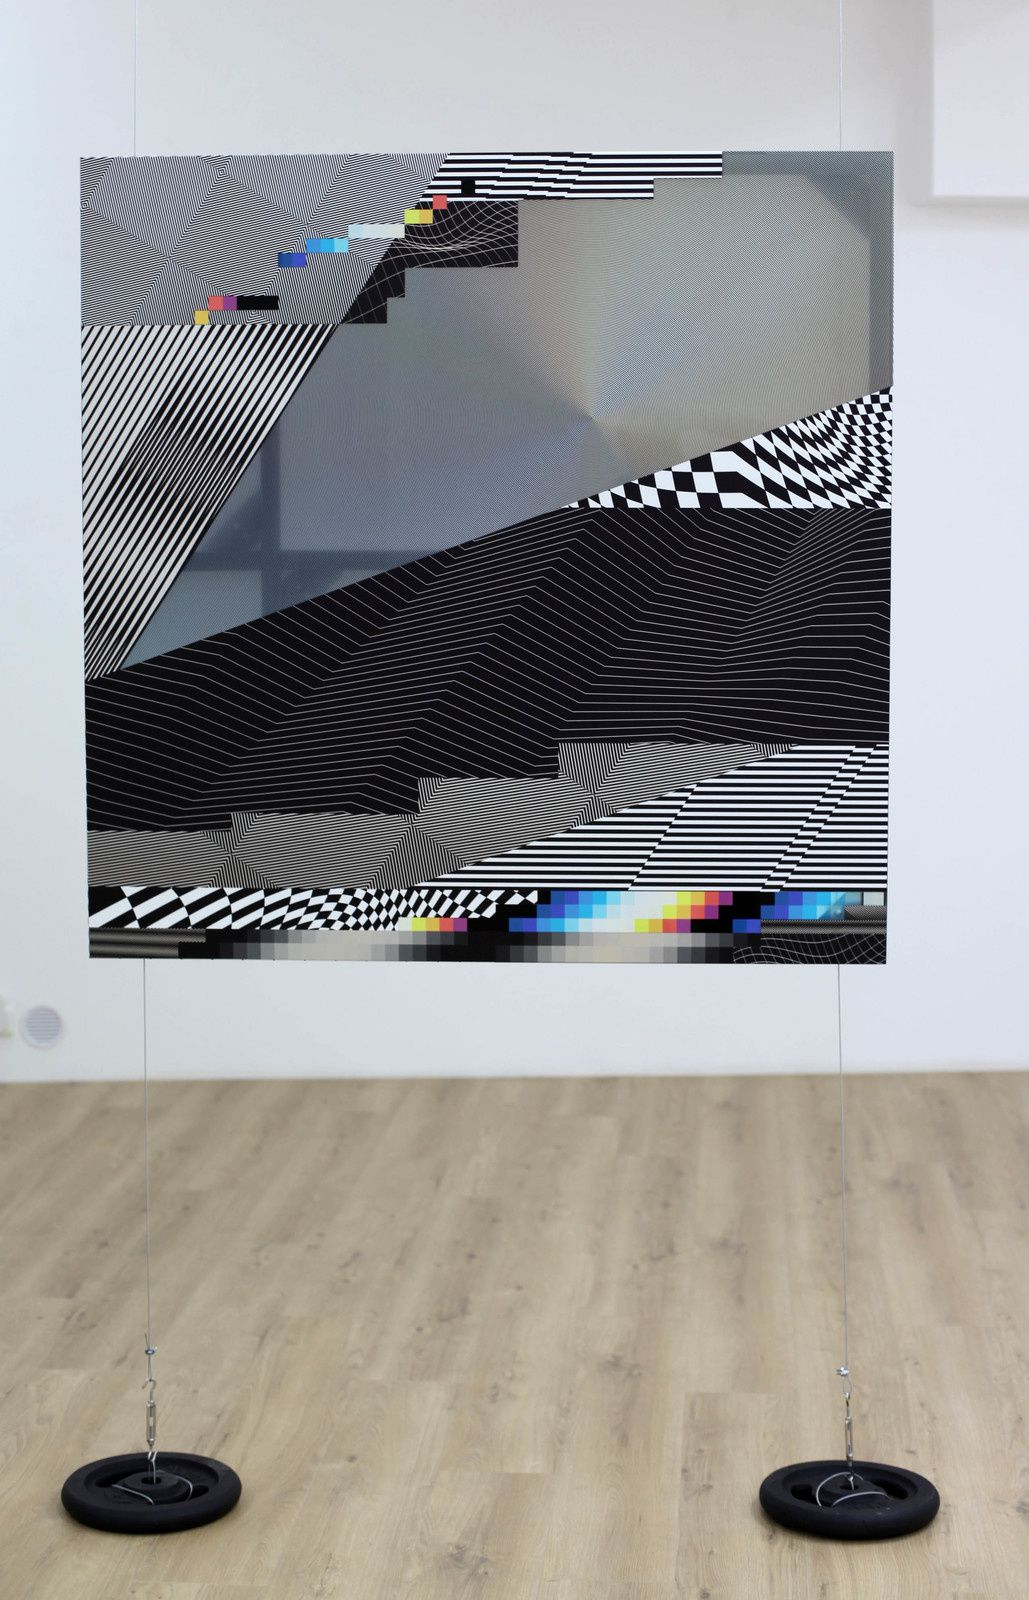 """W3 - Dimensional 29"", 2019 de Felipe PANTONE - Courtesy Gallery Danysz © Photo Éric Simon"